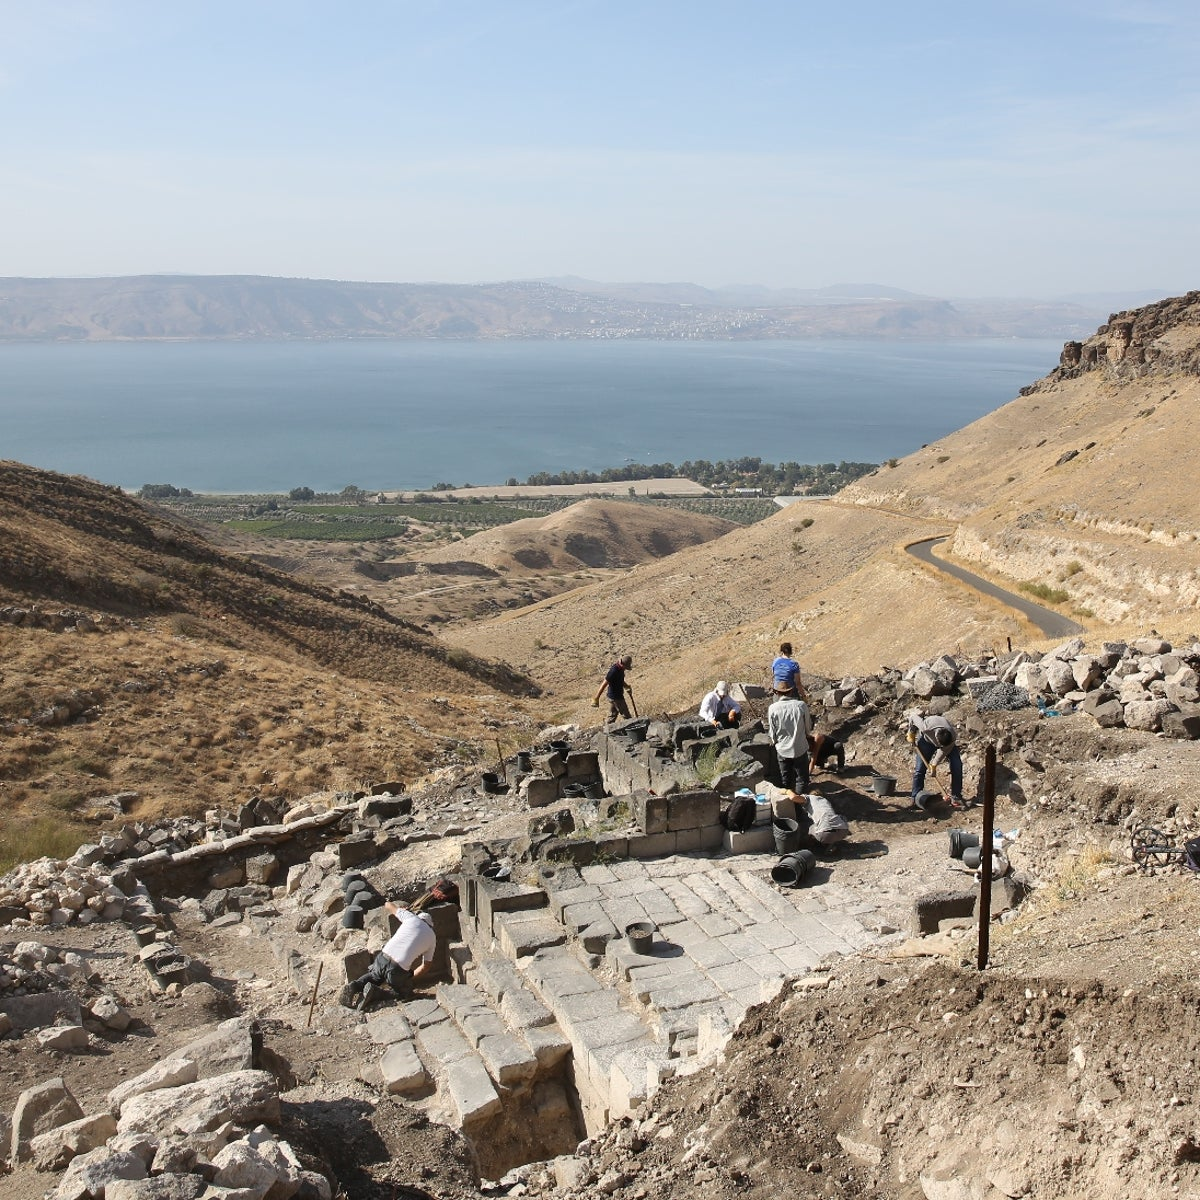 A view of Hippos, and the Sea of Galilee in the background, from the east.